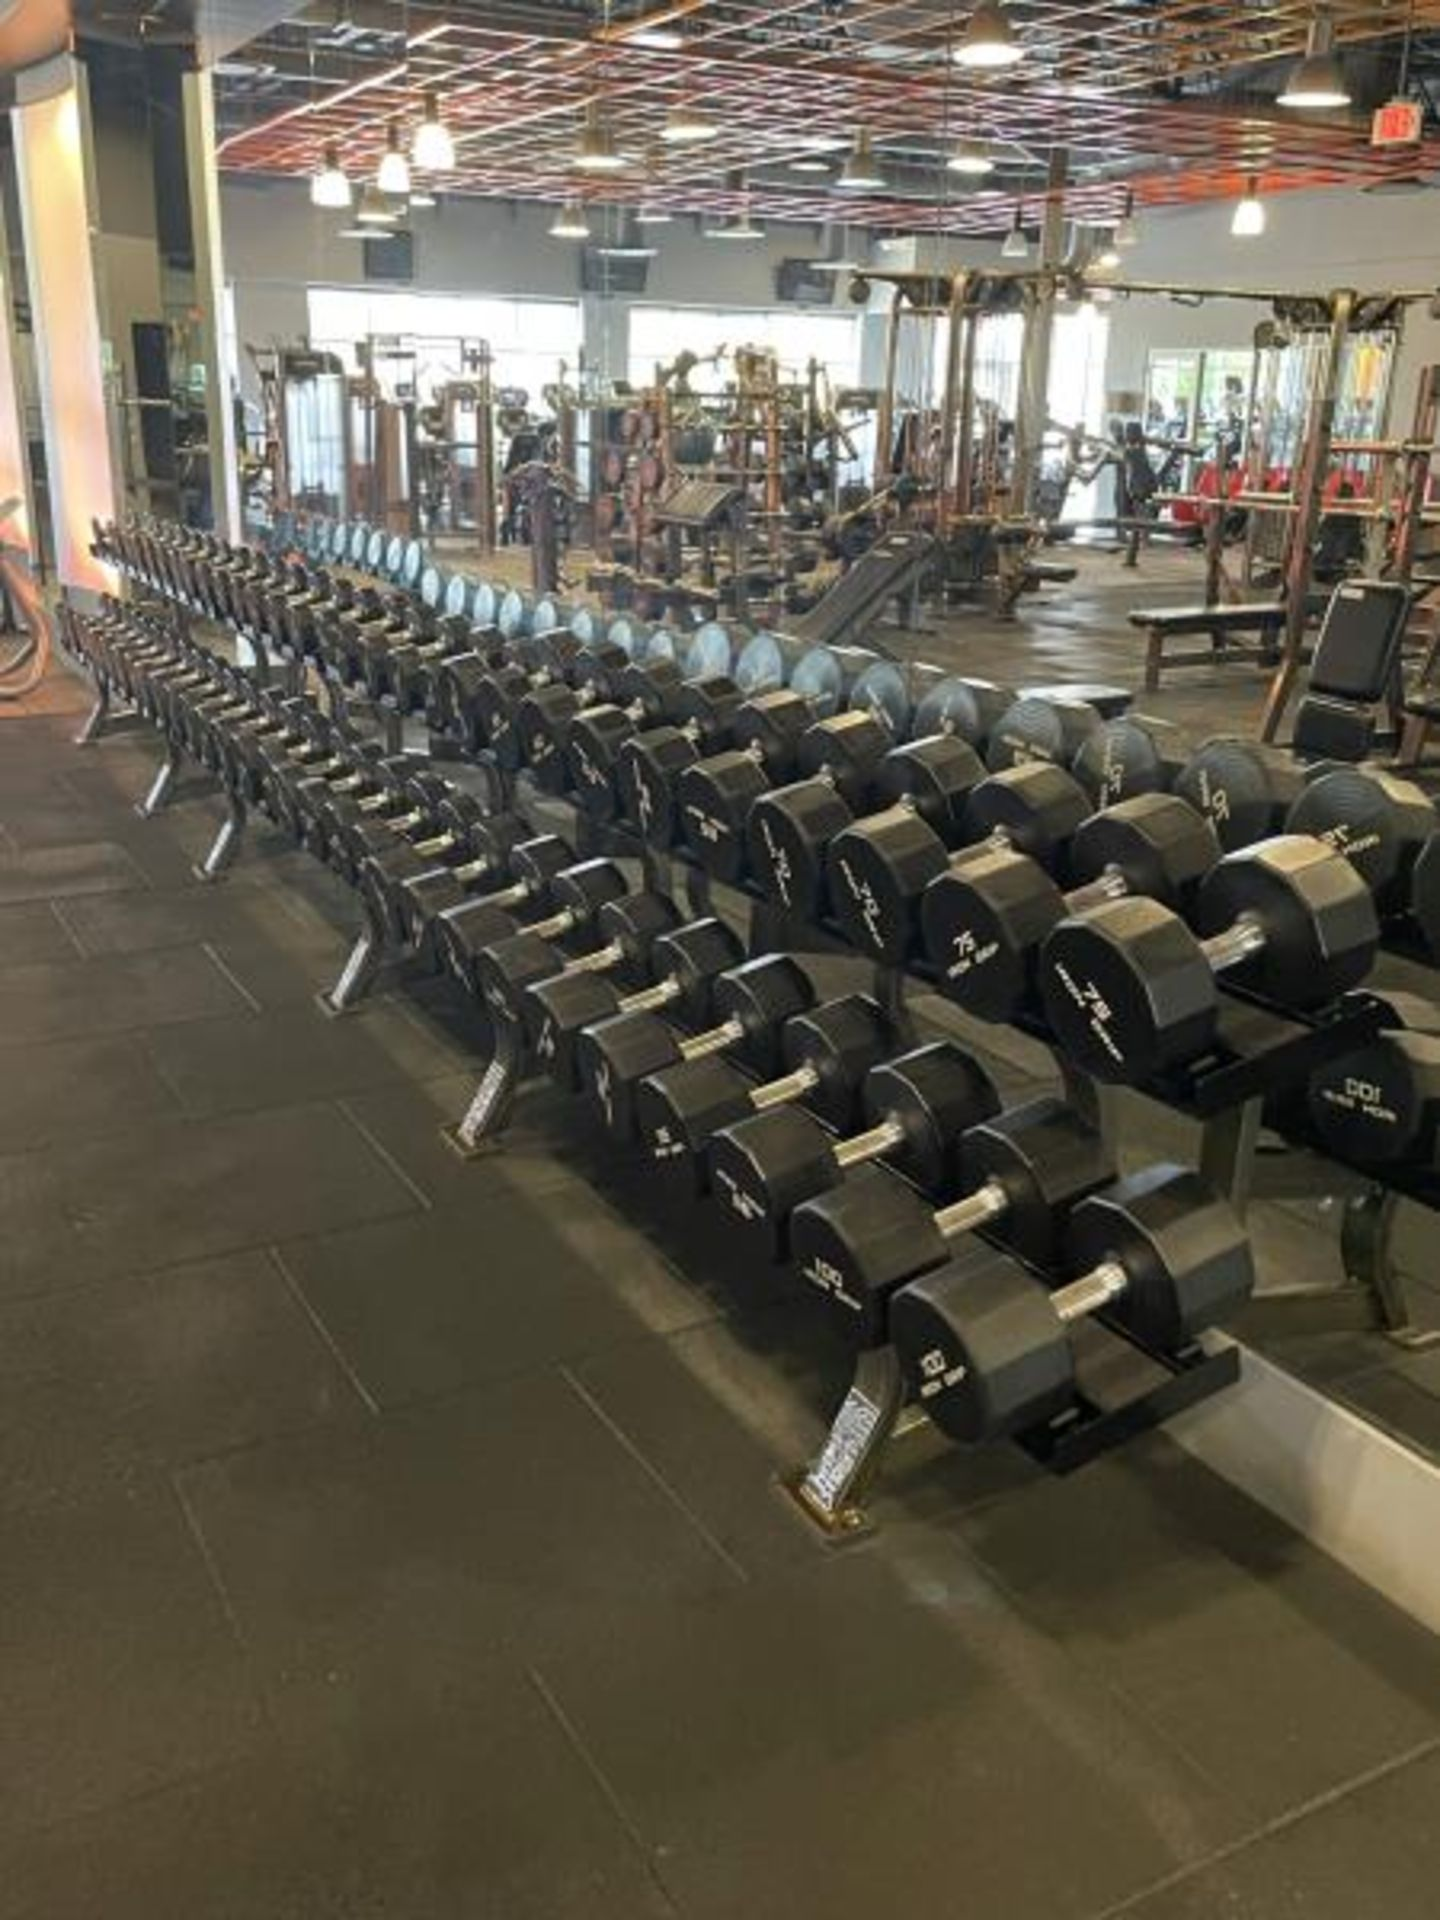 Iron Grip Dumbbell 5-100# with Hammer Strength 2 Tier Racks - Image 8 of 9